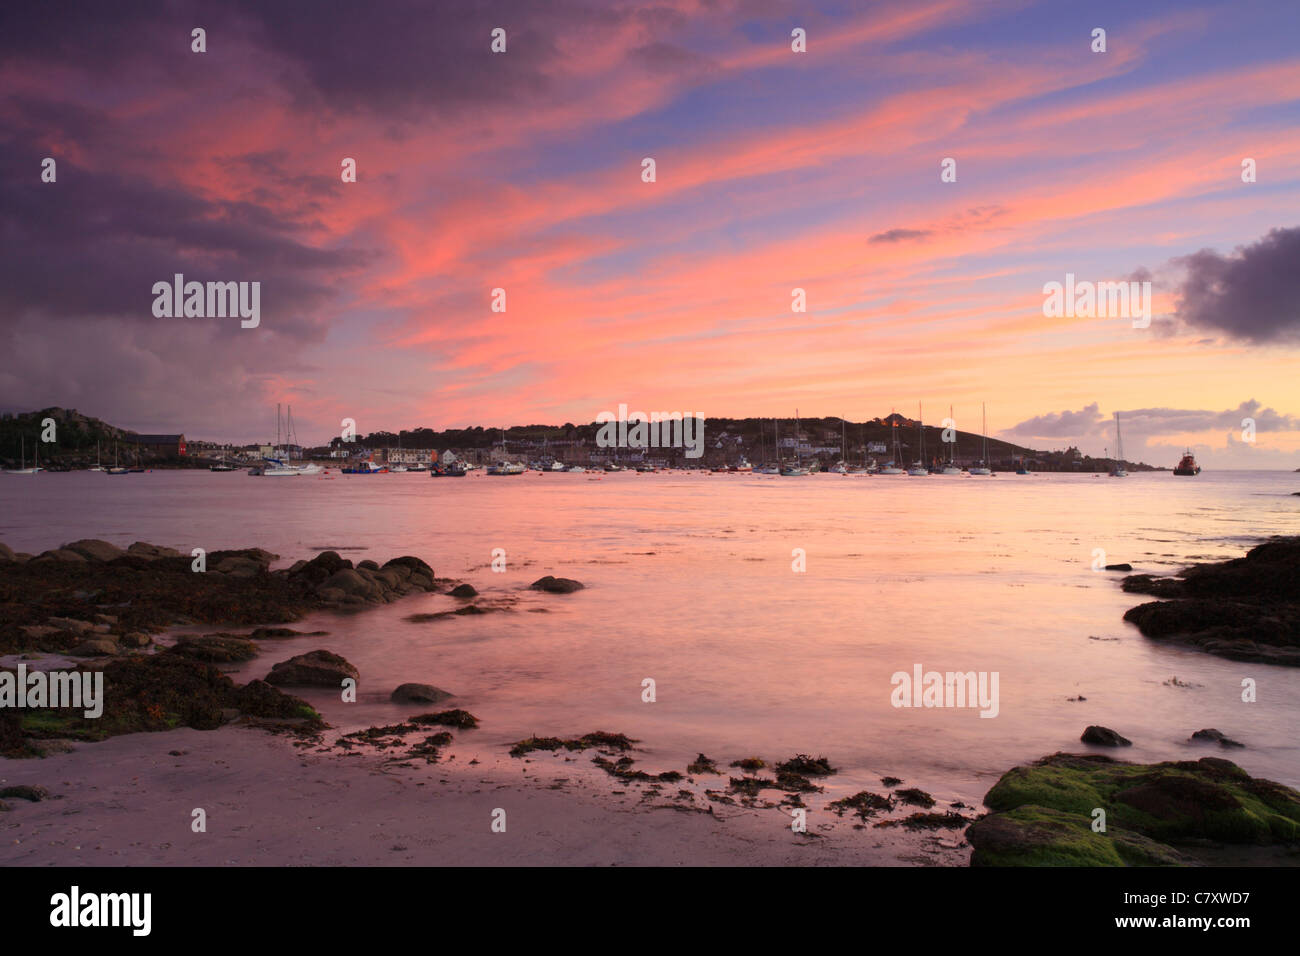 Hugh Town, St Marys, Sunset from Porthloo beach, Isles of Scilly, Cornwall, UK - Stock Image